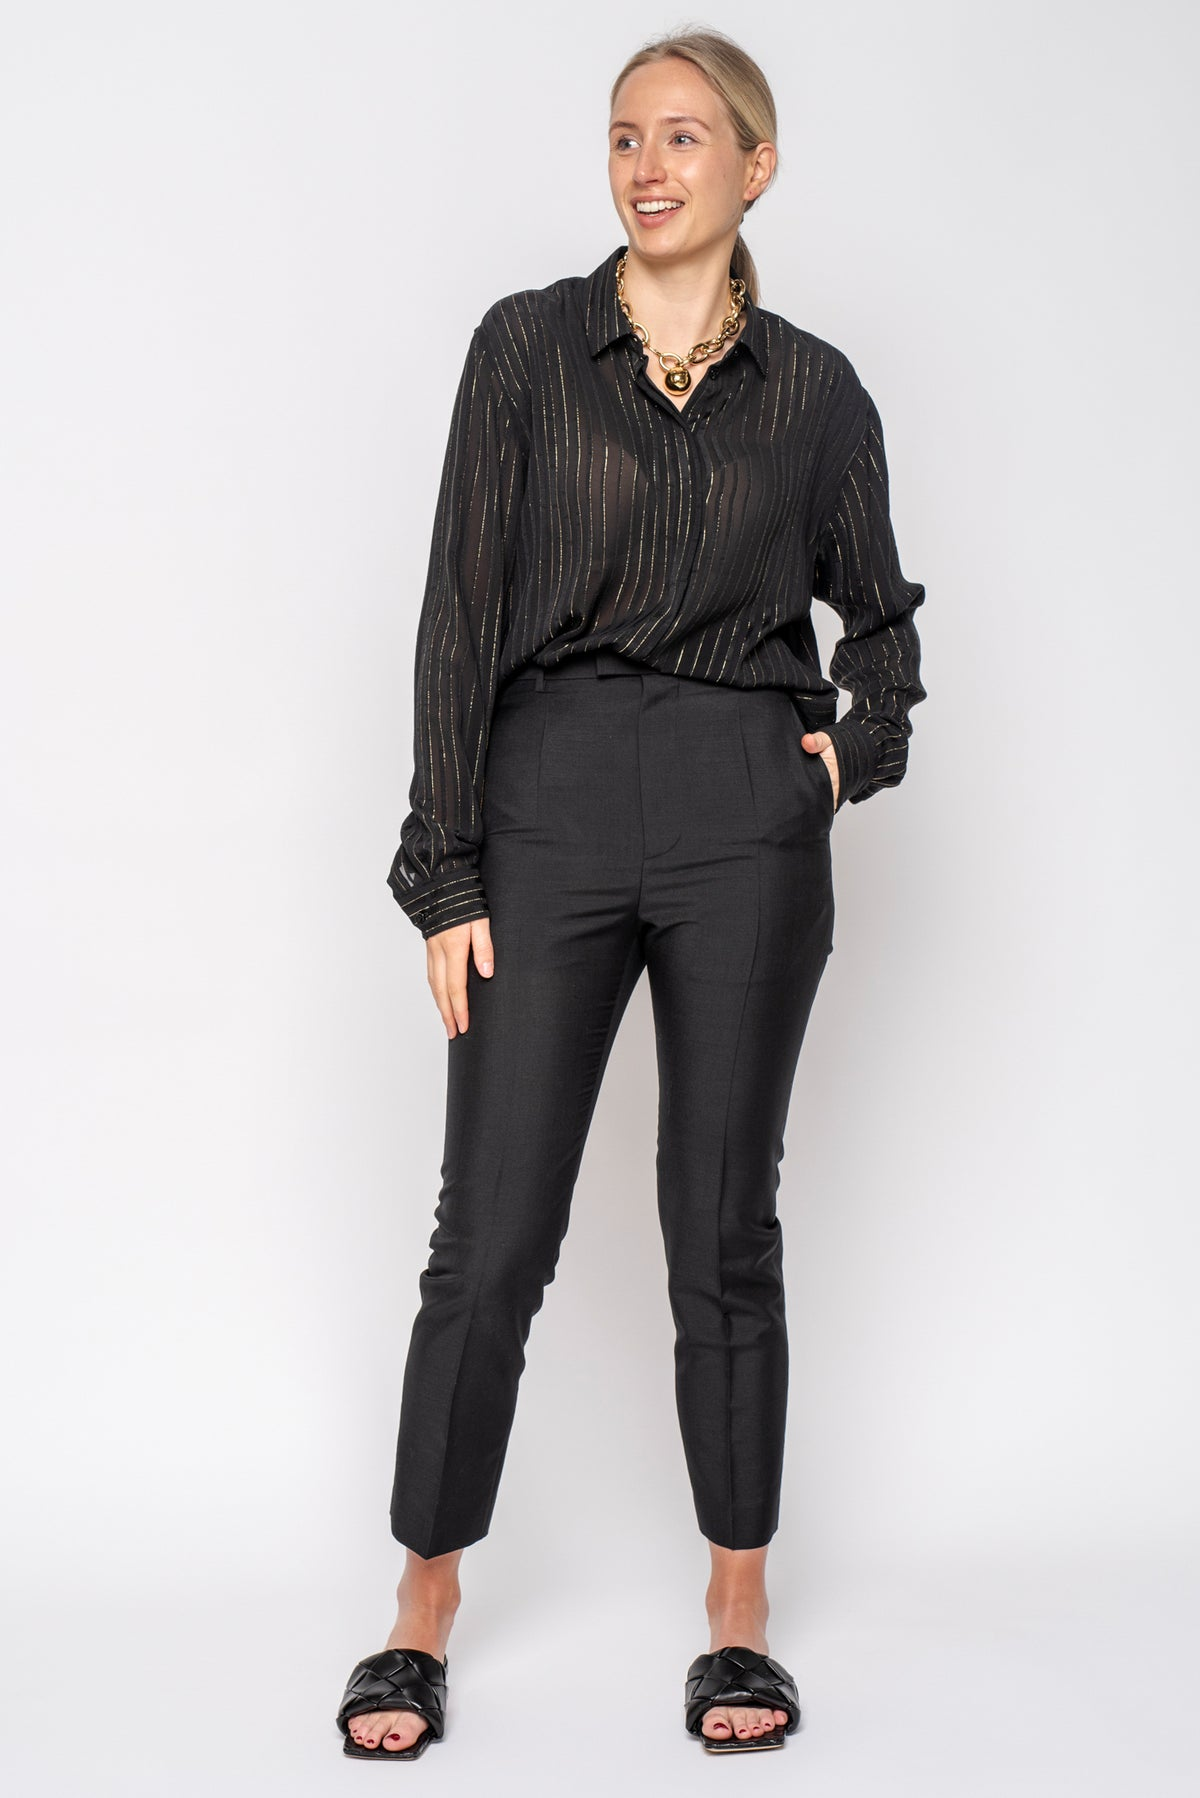 Saint Laurent Black Chiffon Evening Shirt with Gold Pinstripe